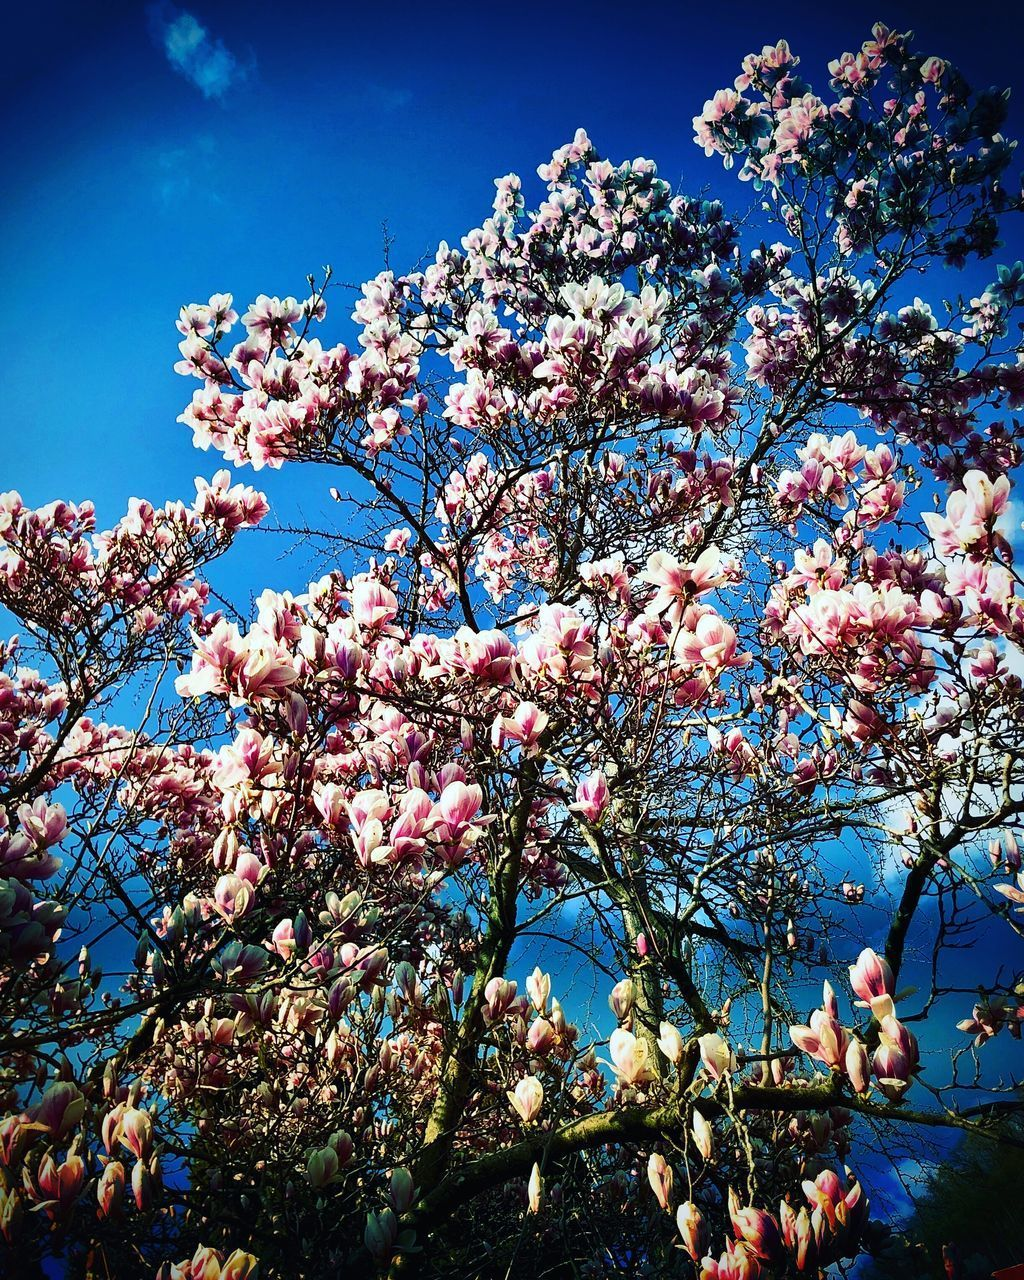 flower, plant, flowering plant, tree, growth, sky, branch, blossom, low angle view, beauty in nature, freshness, fragility, nature, pink color, day, springtime, vulnerability, blue, clear sky, sunlight, no people, outdoors, cherry blossom, cherry tree, spring